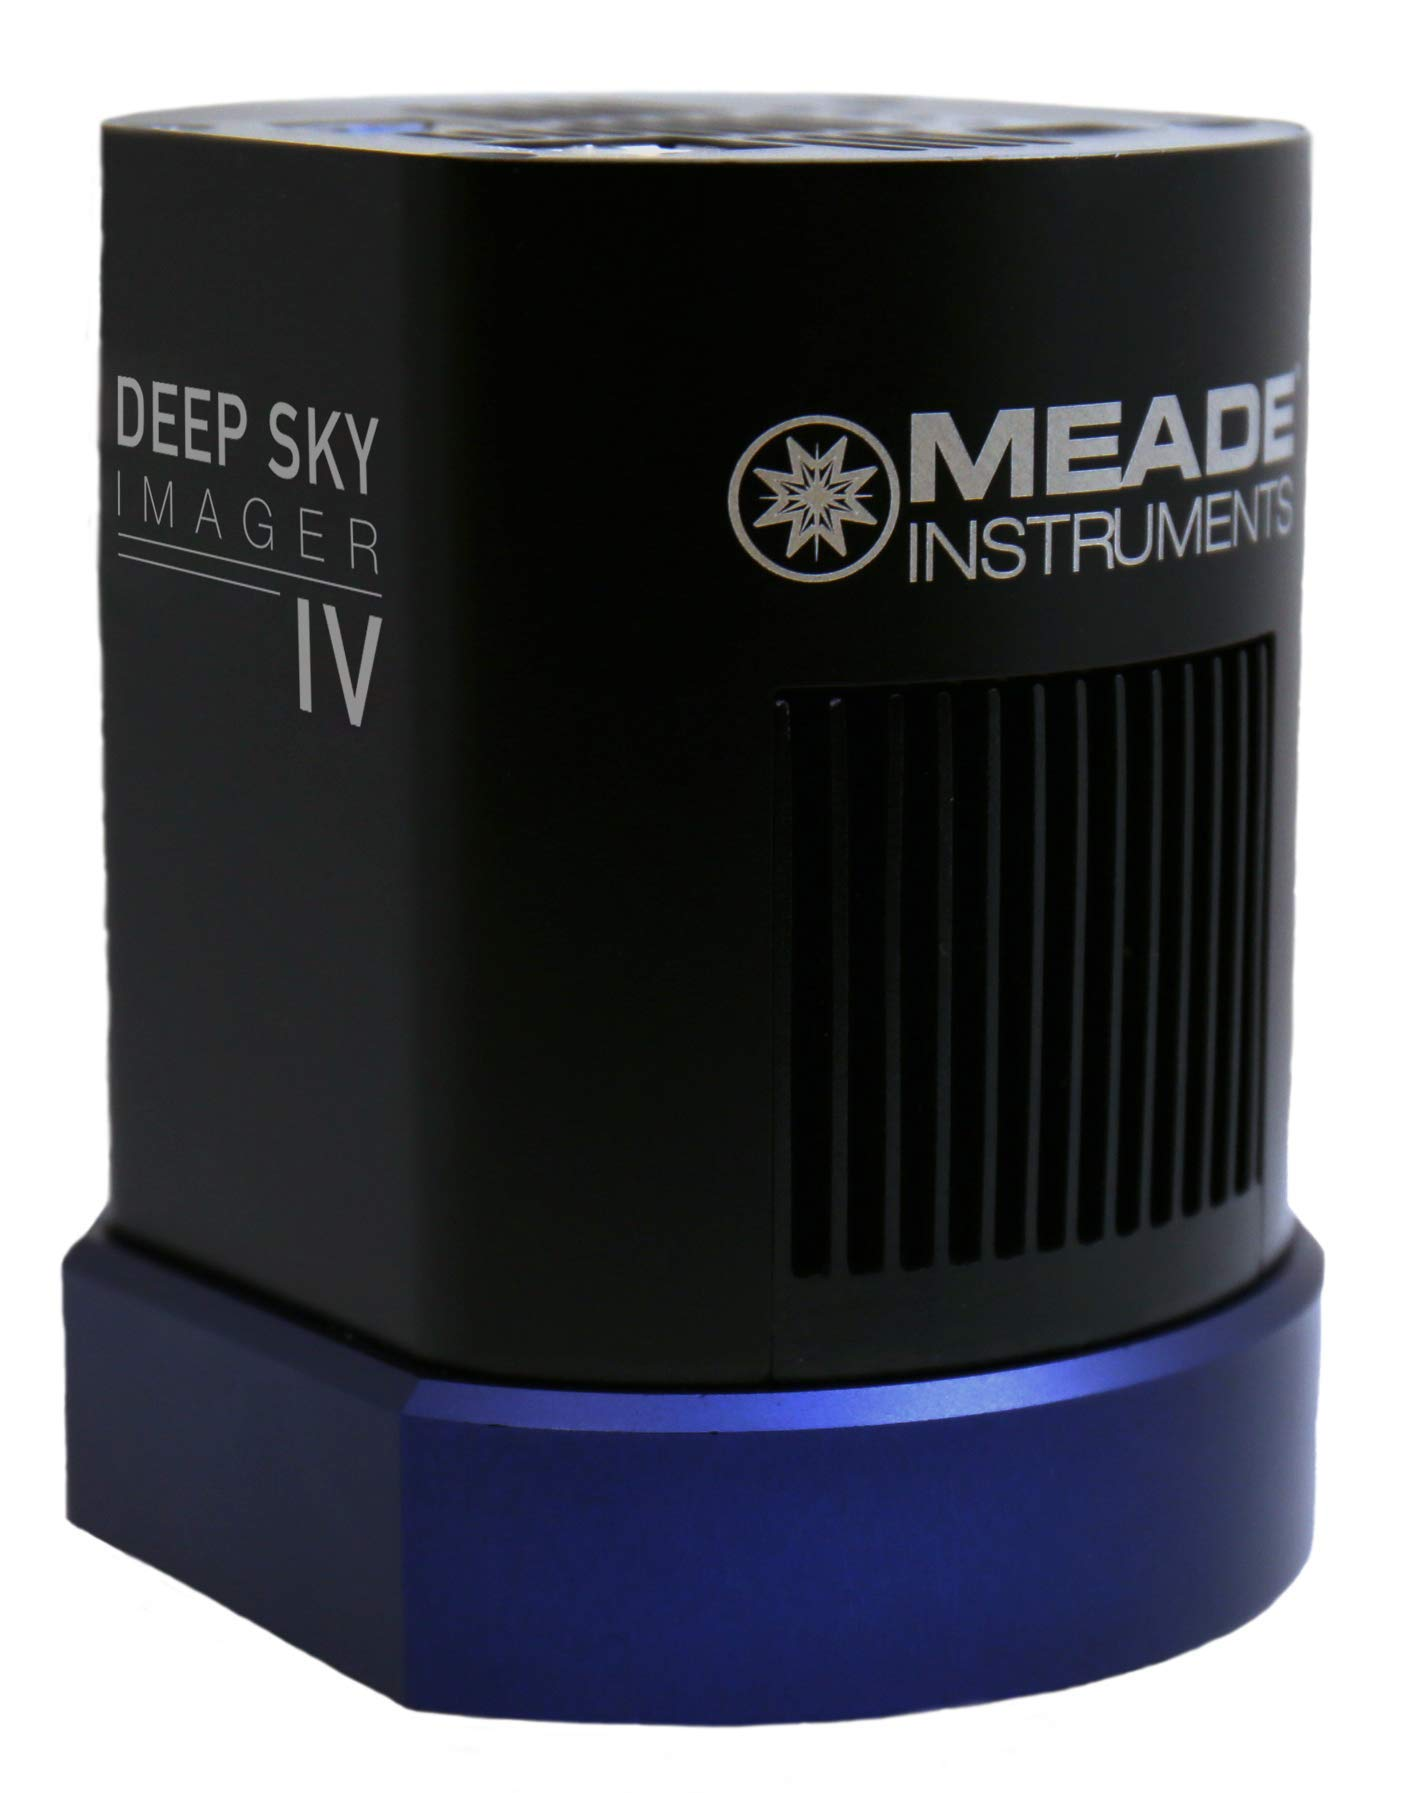 Meade Instruments 633002 Deep Sky Imager IV Monochrome by Meade Instruments